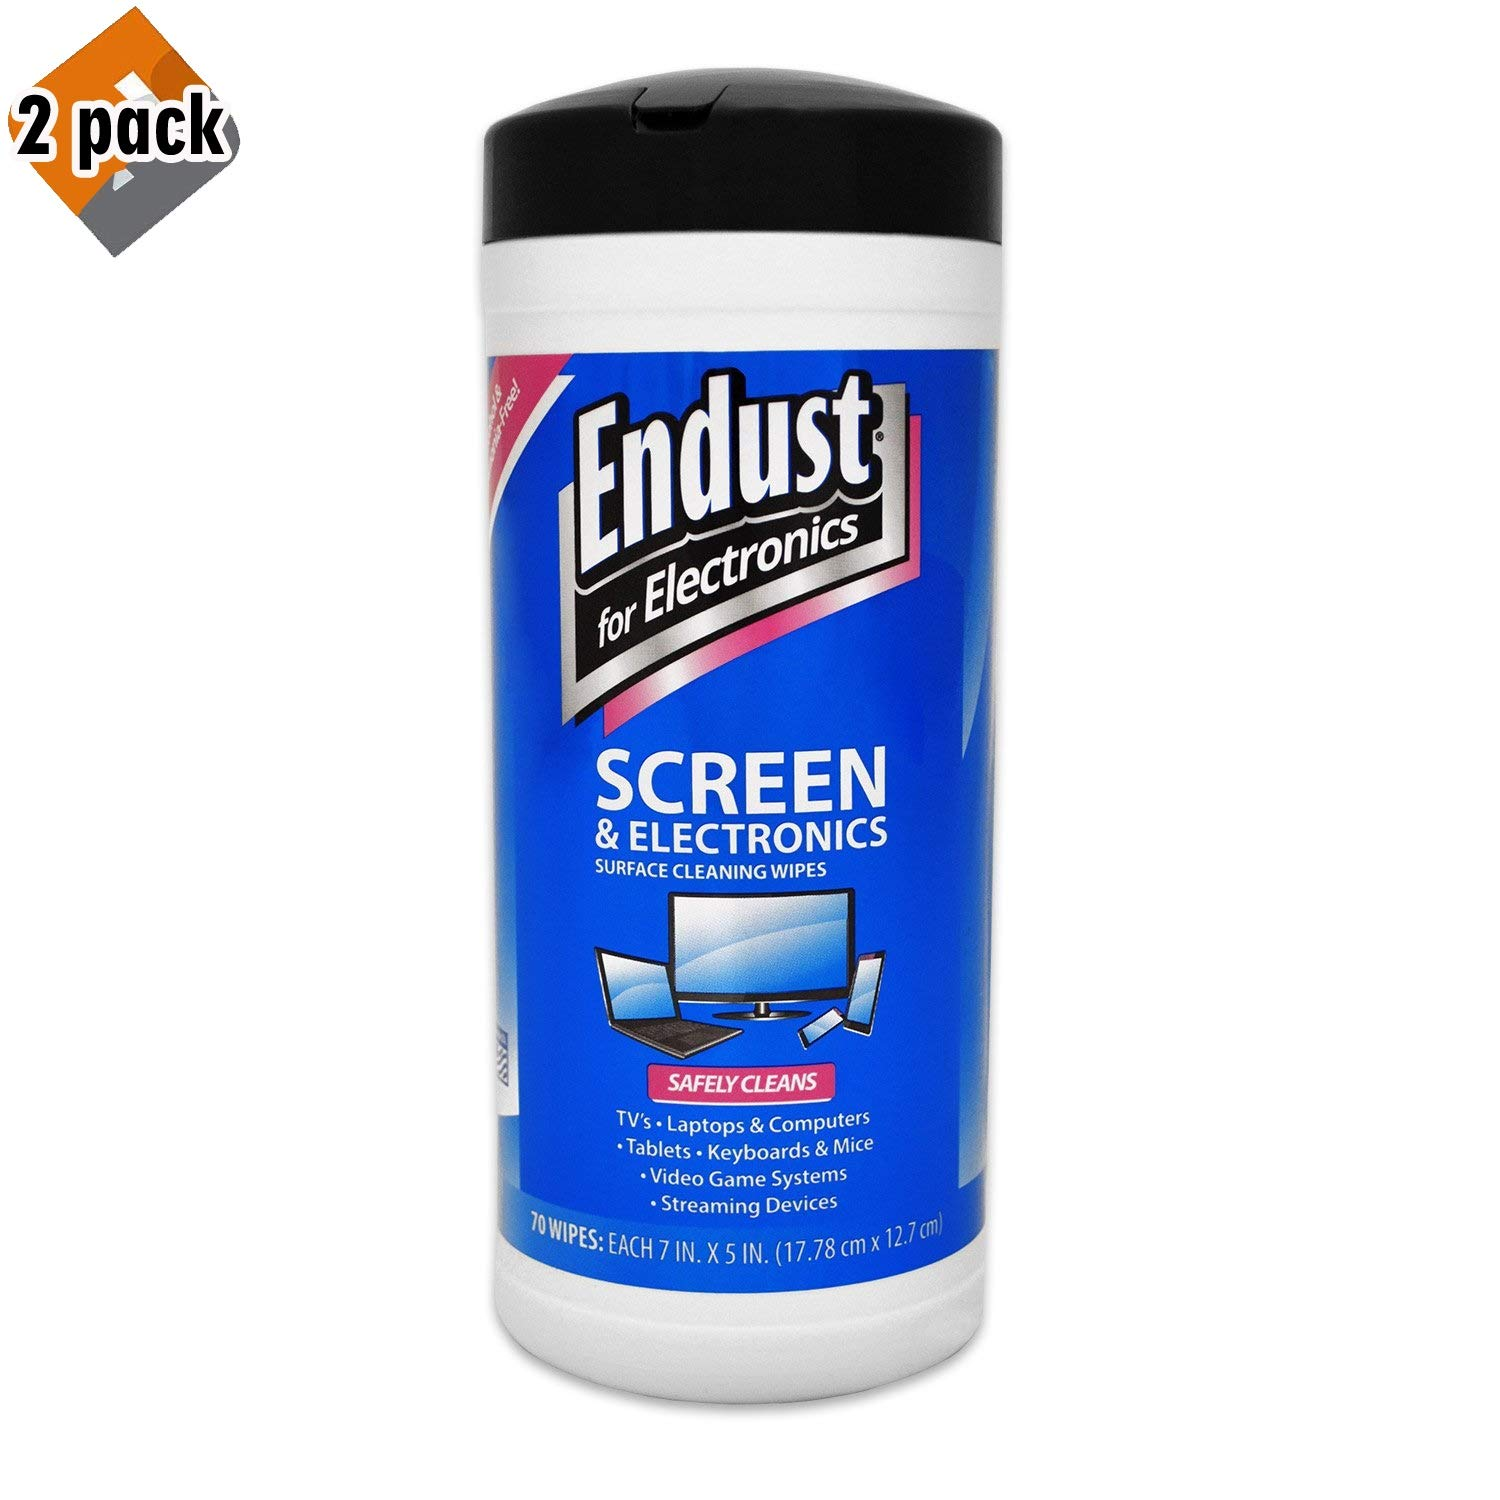 Endust for Electronics, Screen Cleaning Wipes, Surface Cleaning, Great LCD and Plasma Wipes, 70 Count, Pack 2